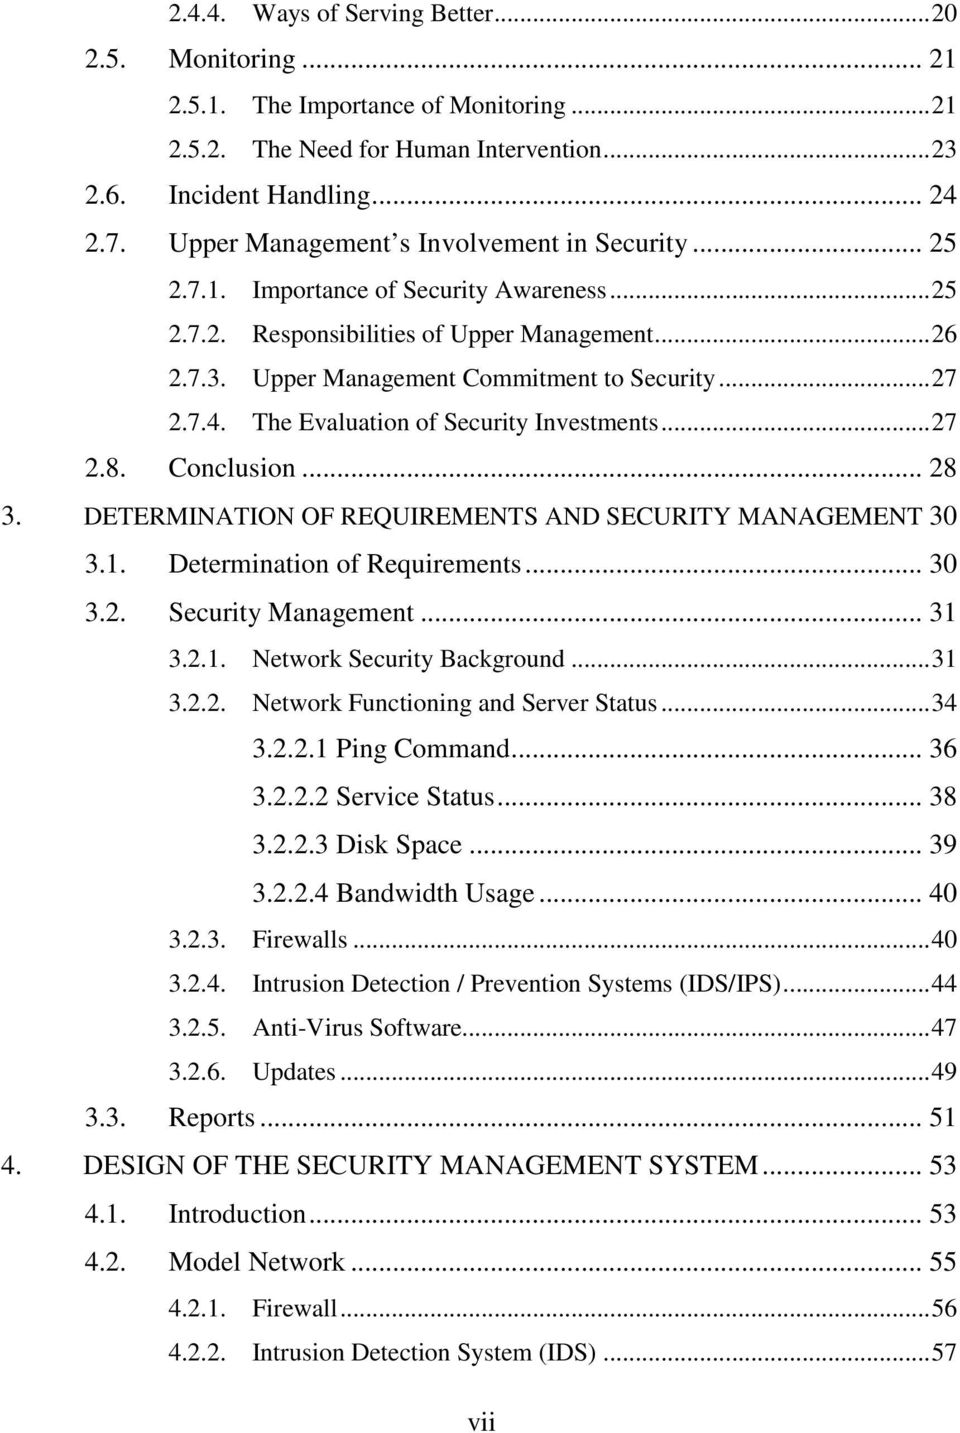 The Evaluation of Security Investments...27 2.8. Conclusion... 28 3. DETERMINATION OF REQUIREMENTS AND SECURITY MANAGEMENT 30 3.1. Determination of Requirements... 30 3.2. Security Management... 31 3.